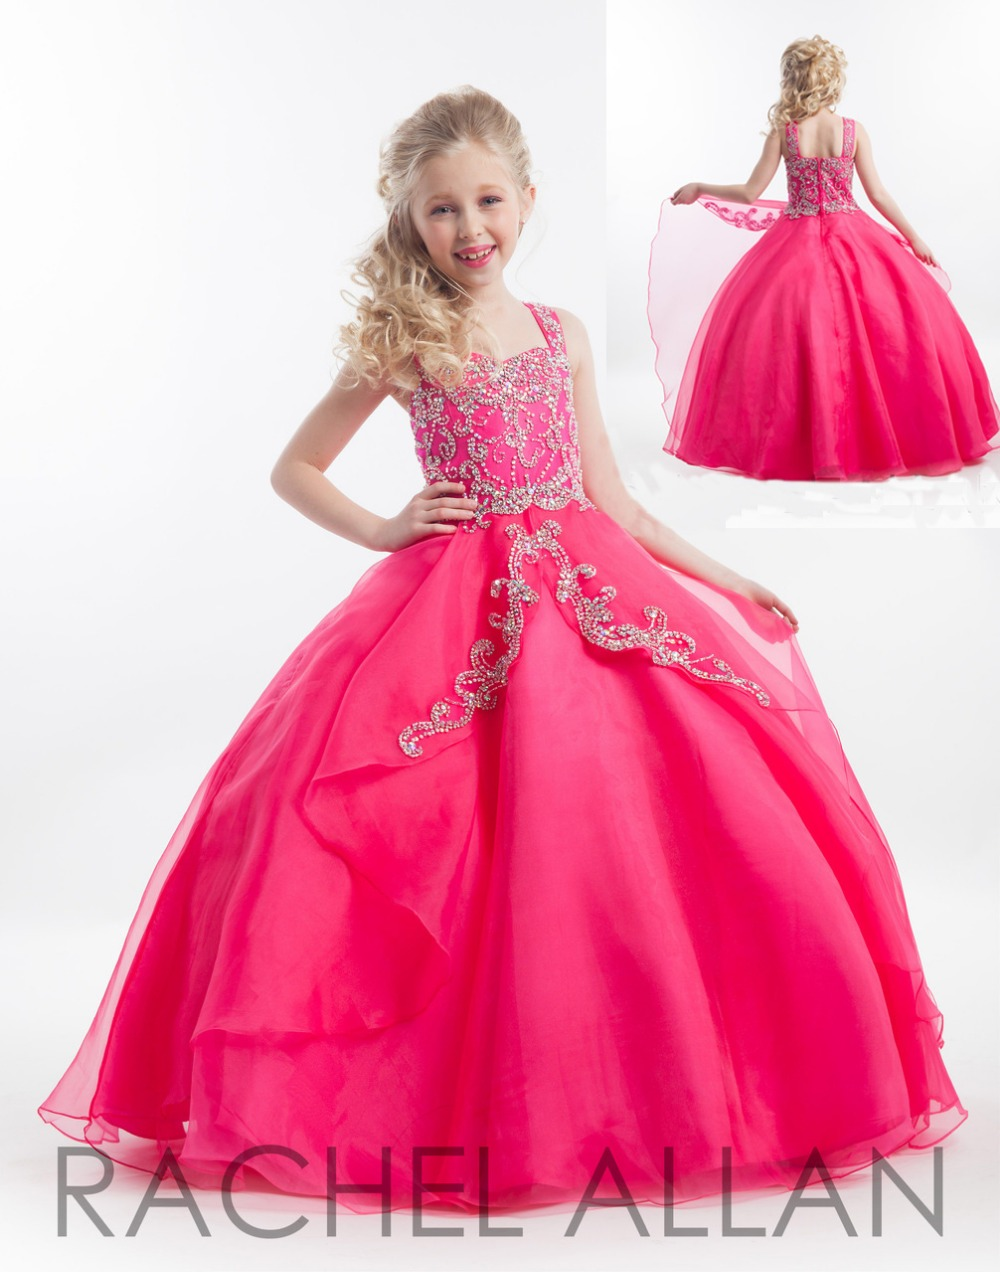 Shop our collection of Girls' Party Dresses from your favorite brands including Tween Diva, Zoe, Honey and Rosie, and more available at nirtsnom.tk